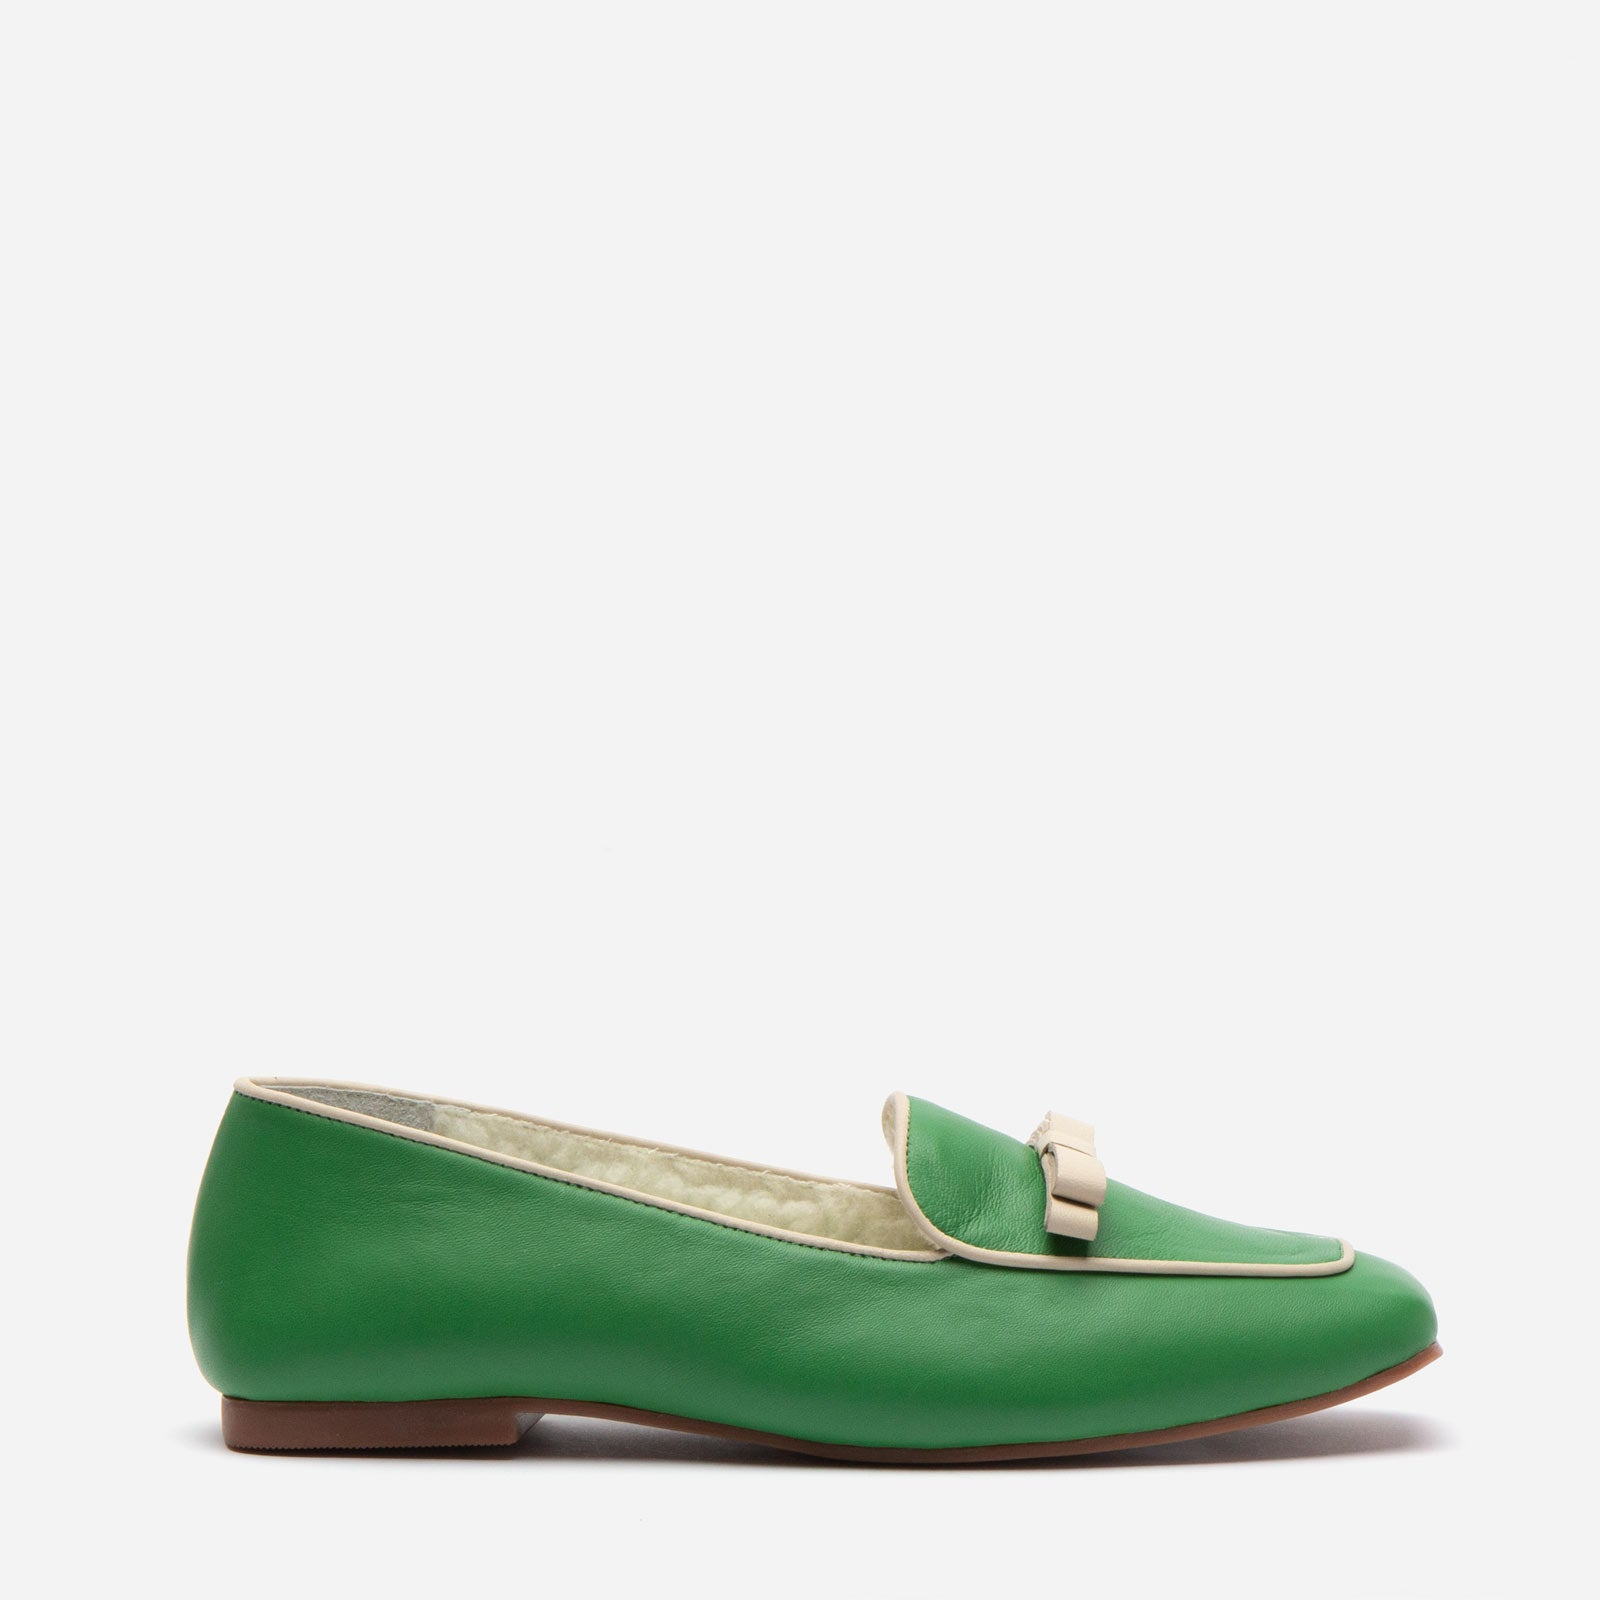 Suzanne Cozy Loafer Nappa Faux Shearling Green - Frances Valentine